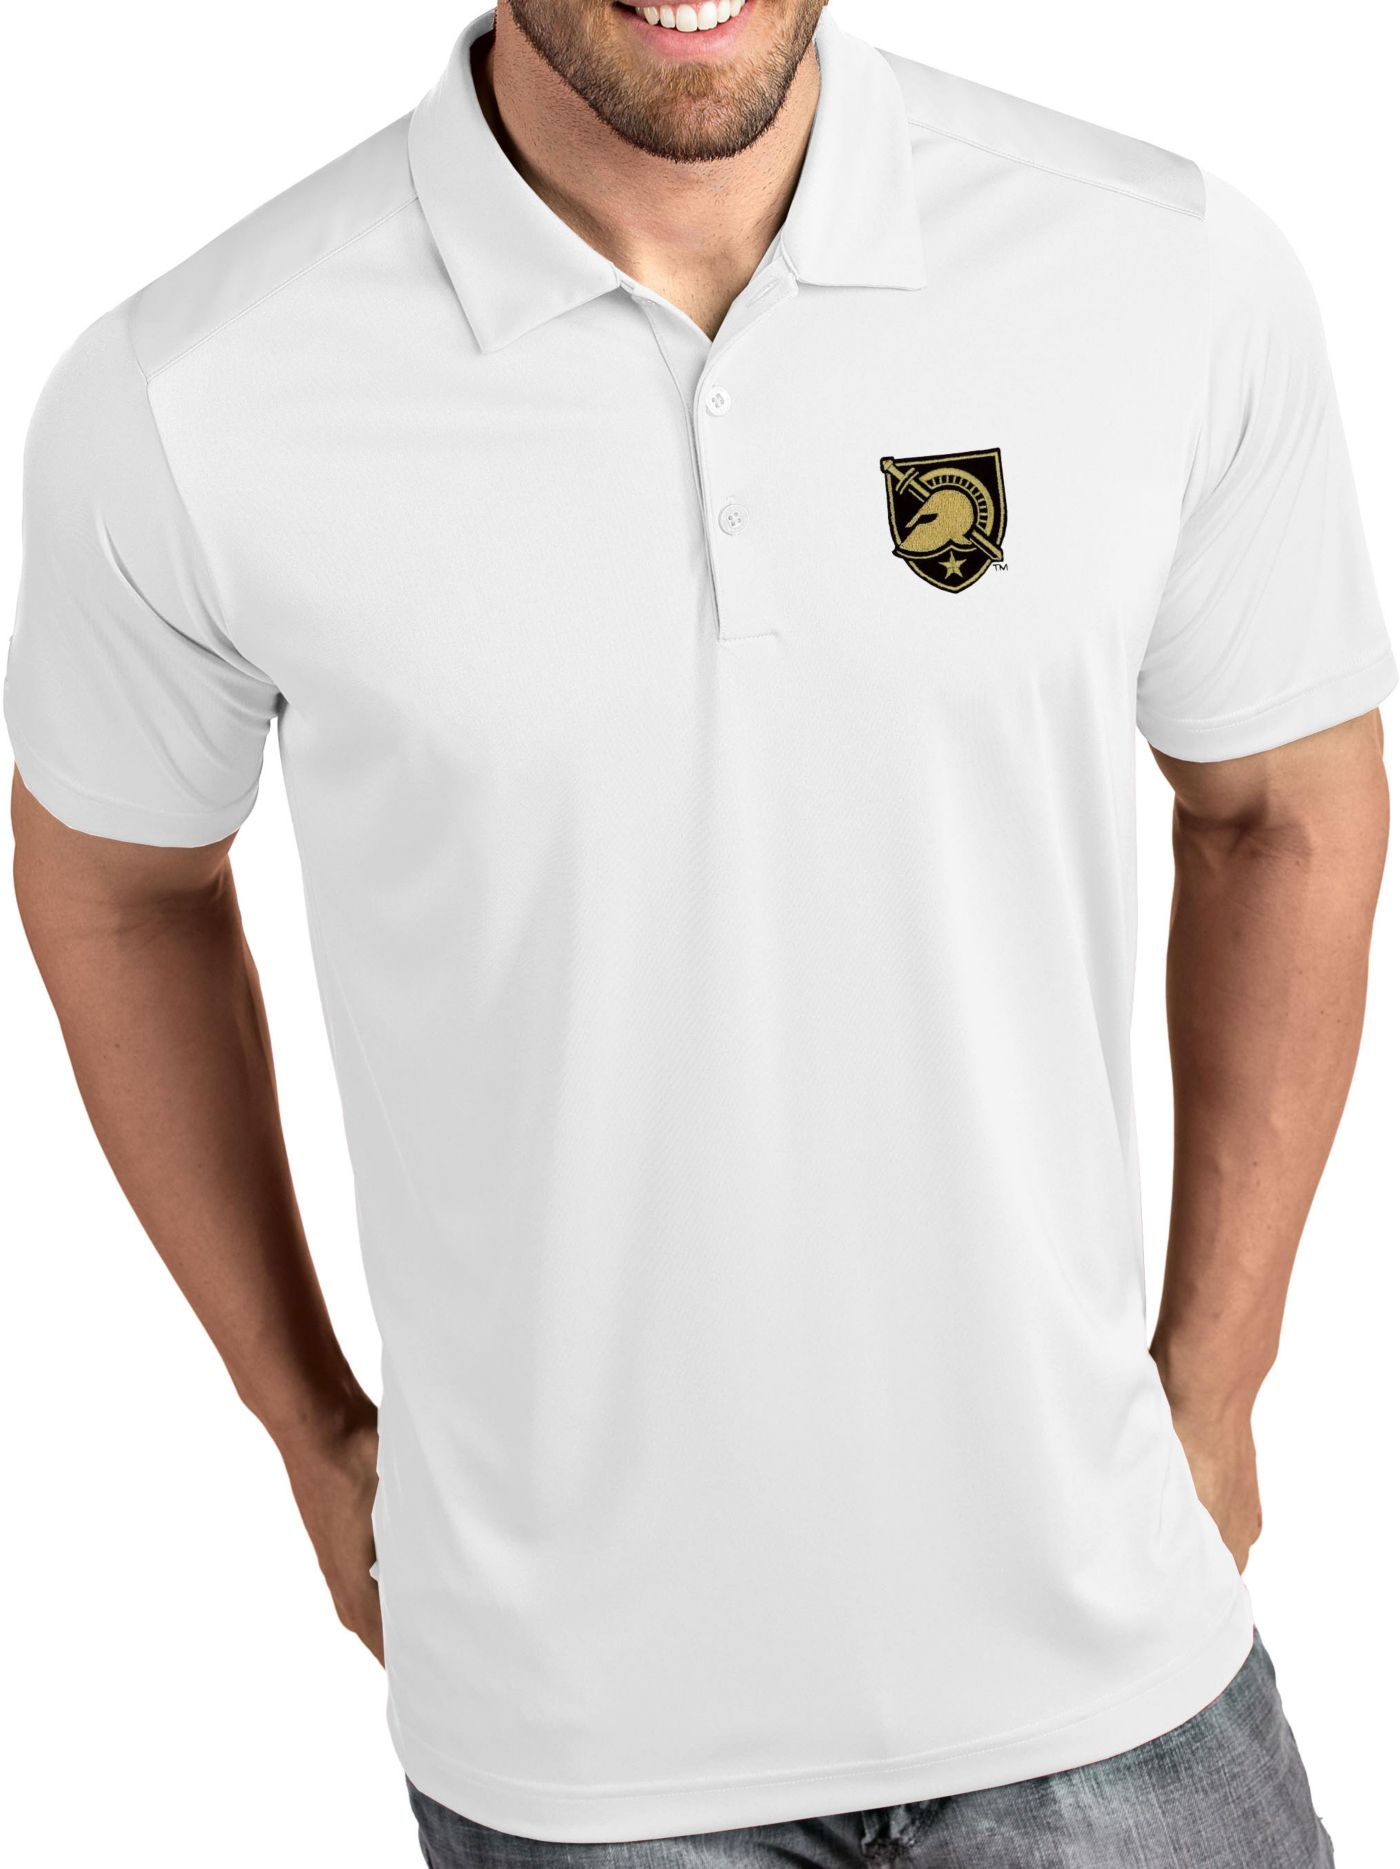 Antigua Men's Army West Point Black Knights Tribute Performance White Polo